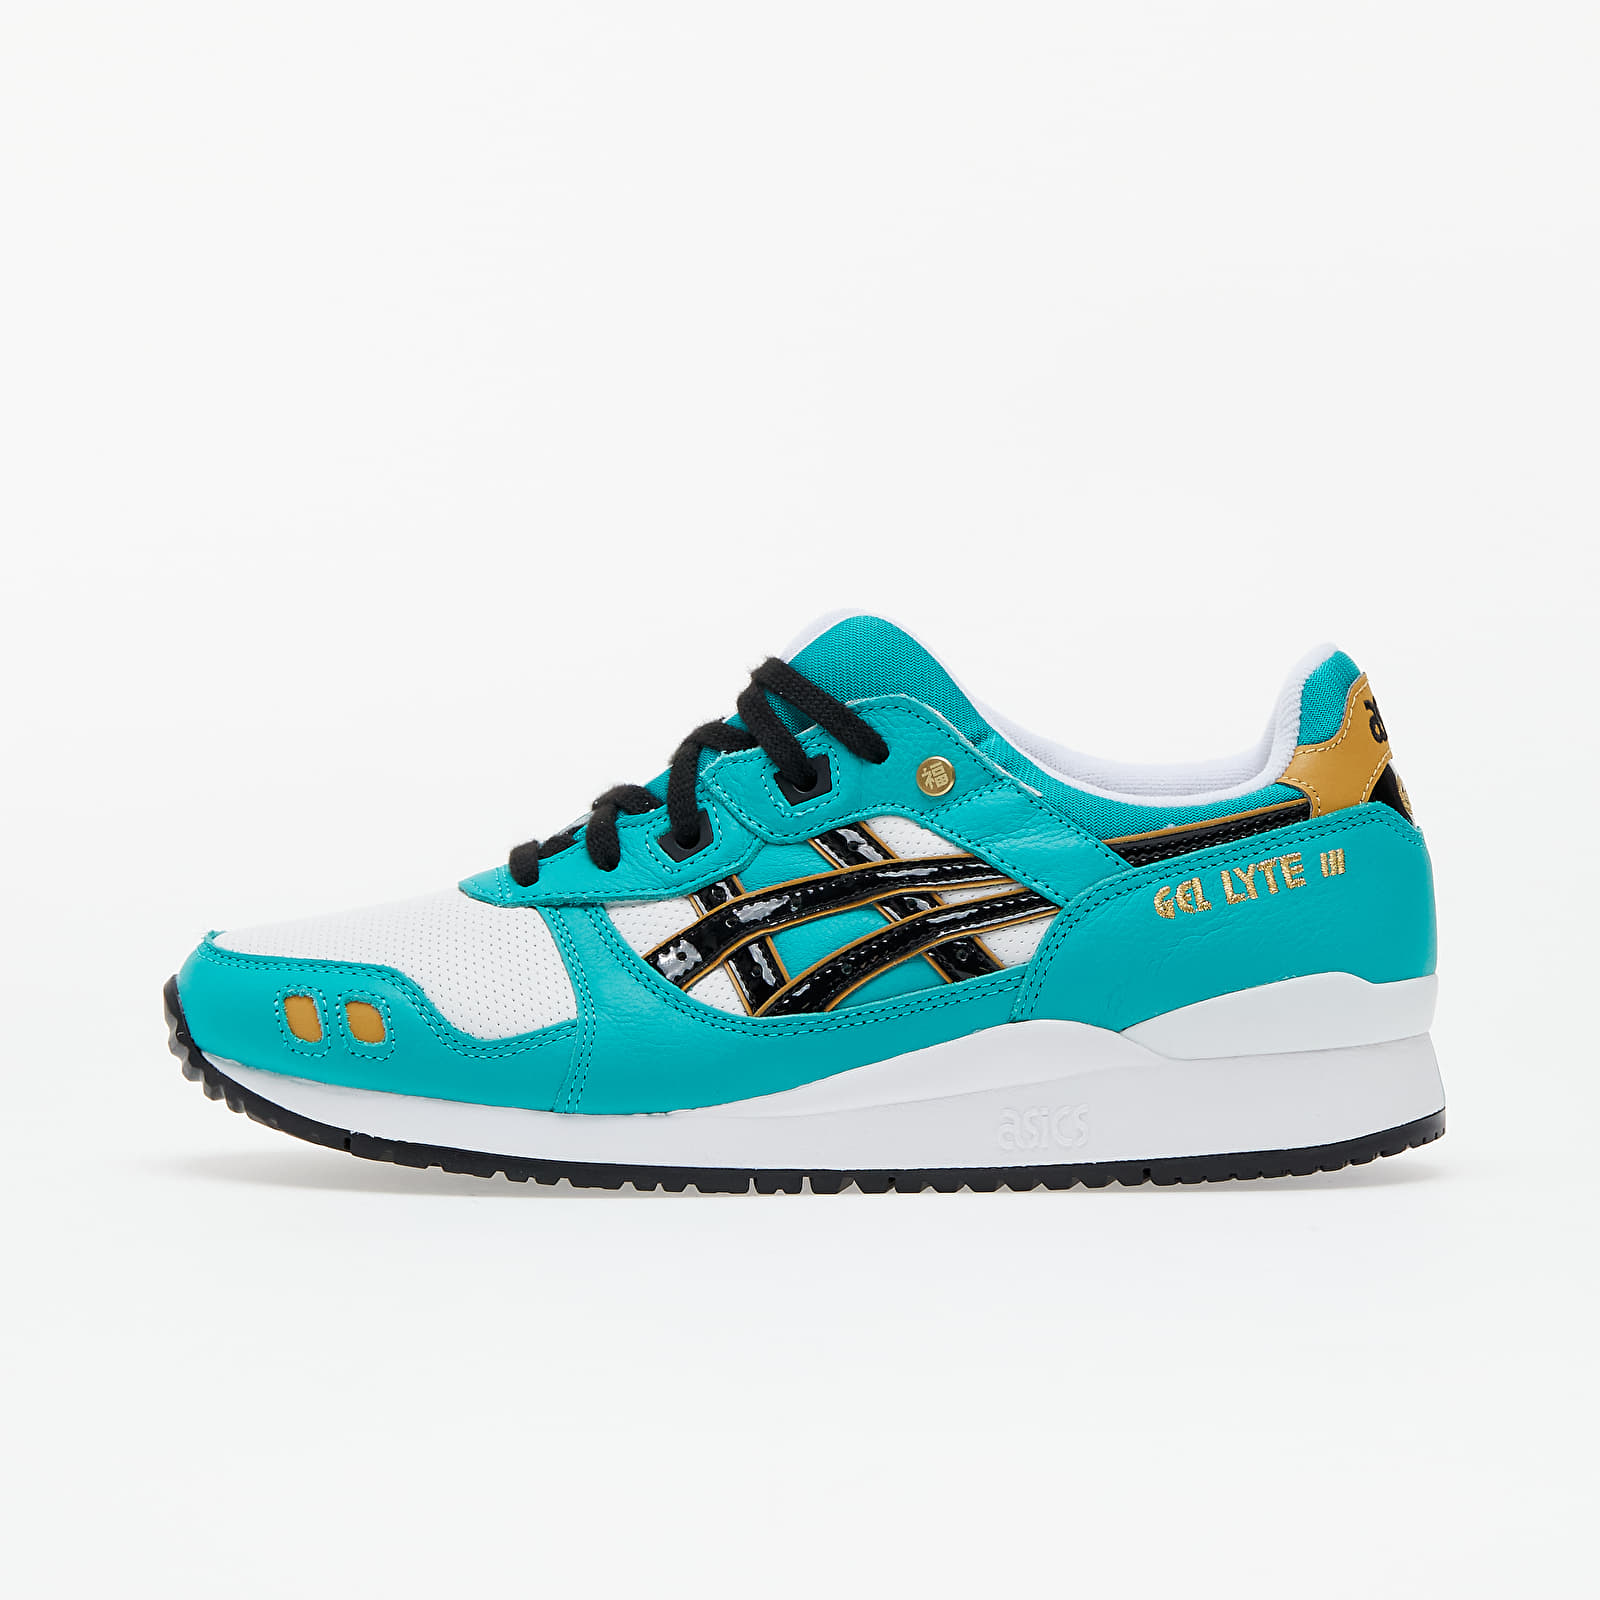 Asics Gel-Lyte III OG Baltic Jewel/ Black EUR 43.5